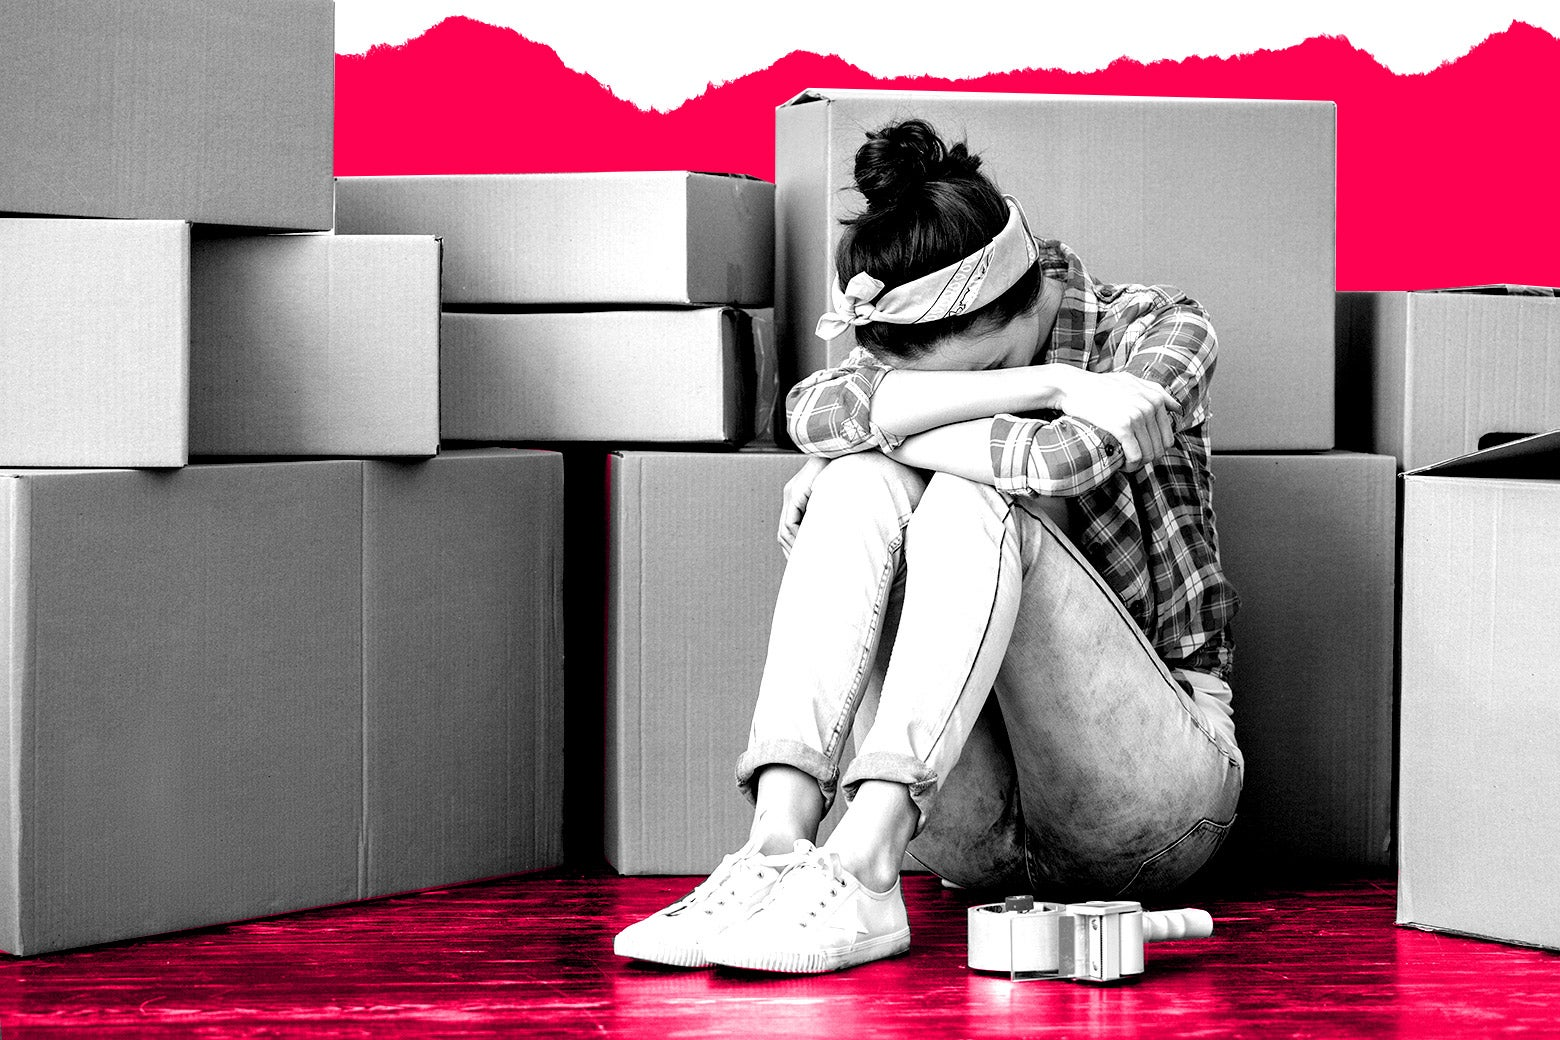 A woman looking distressed amongst many moving boxes.